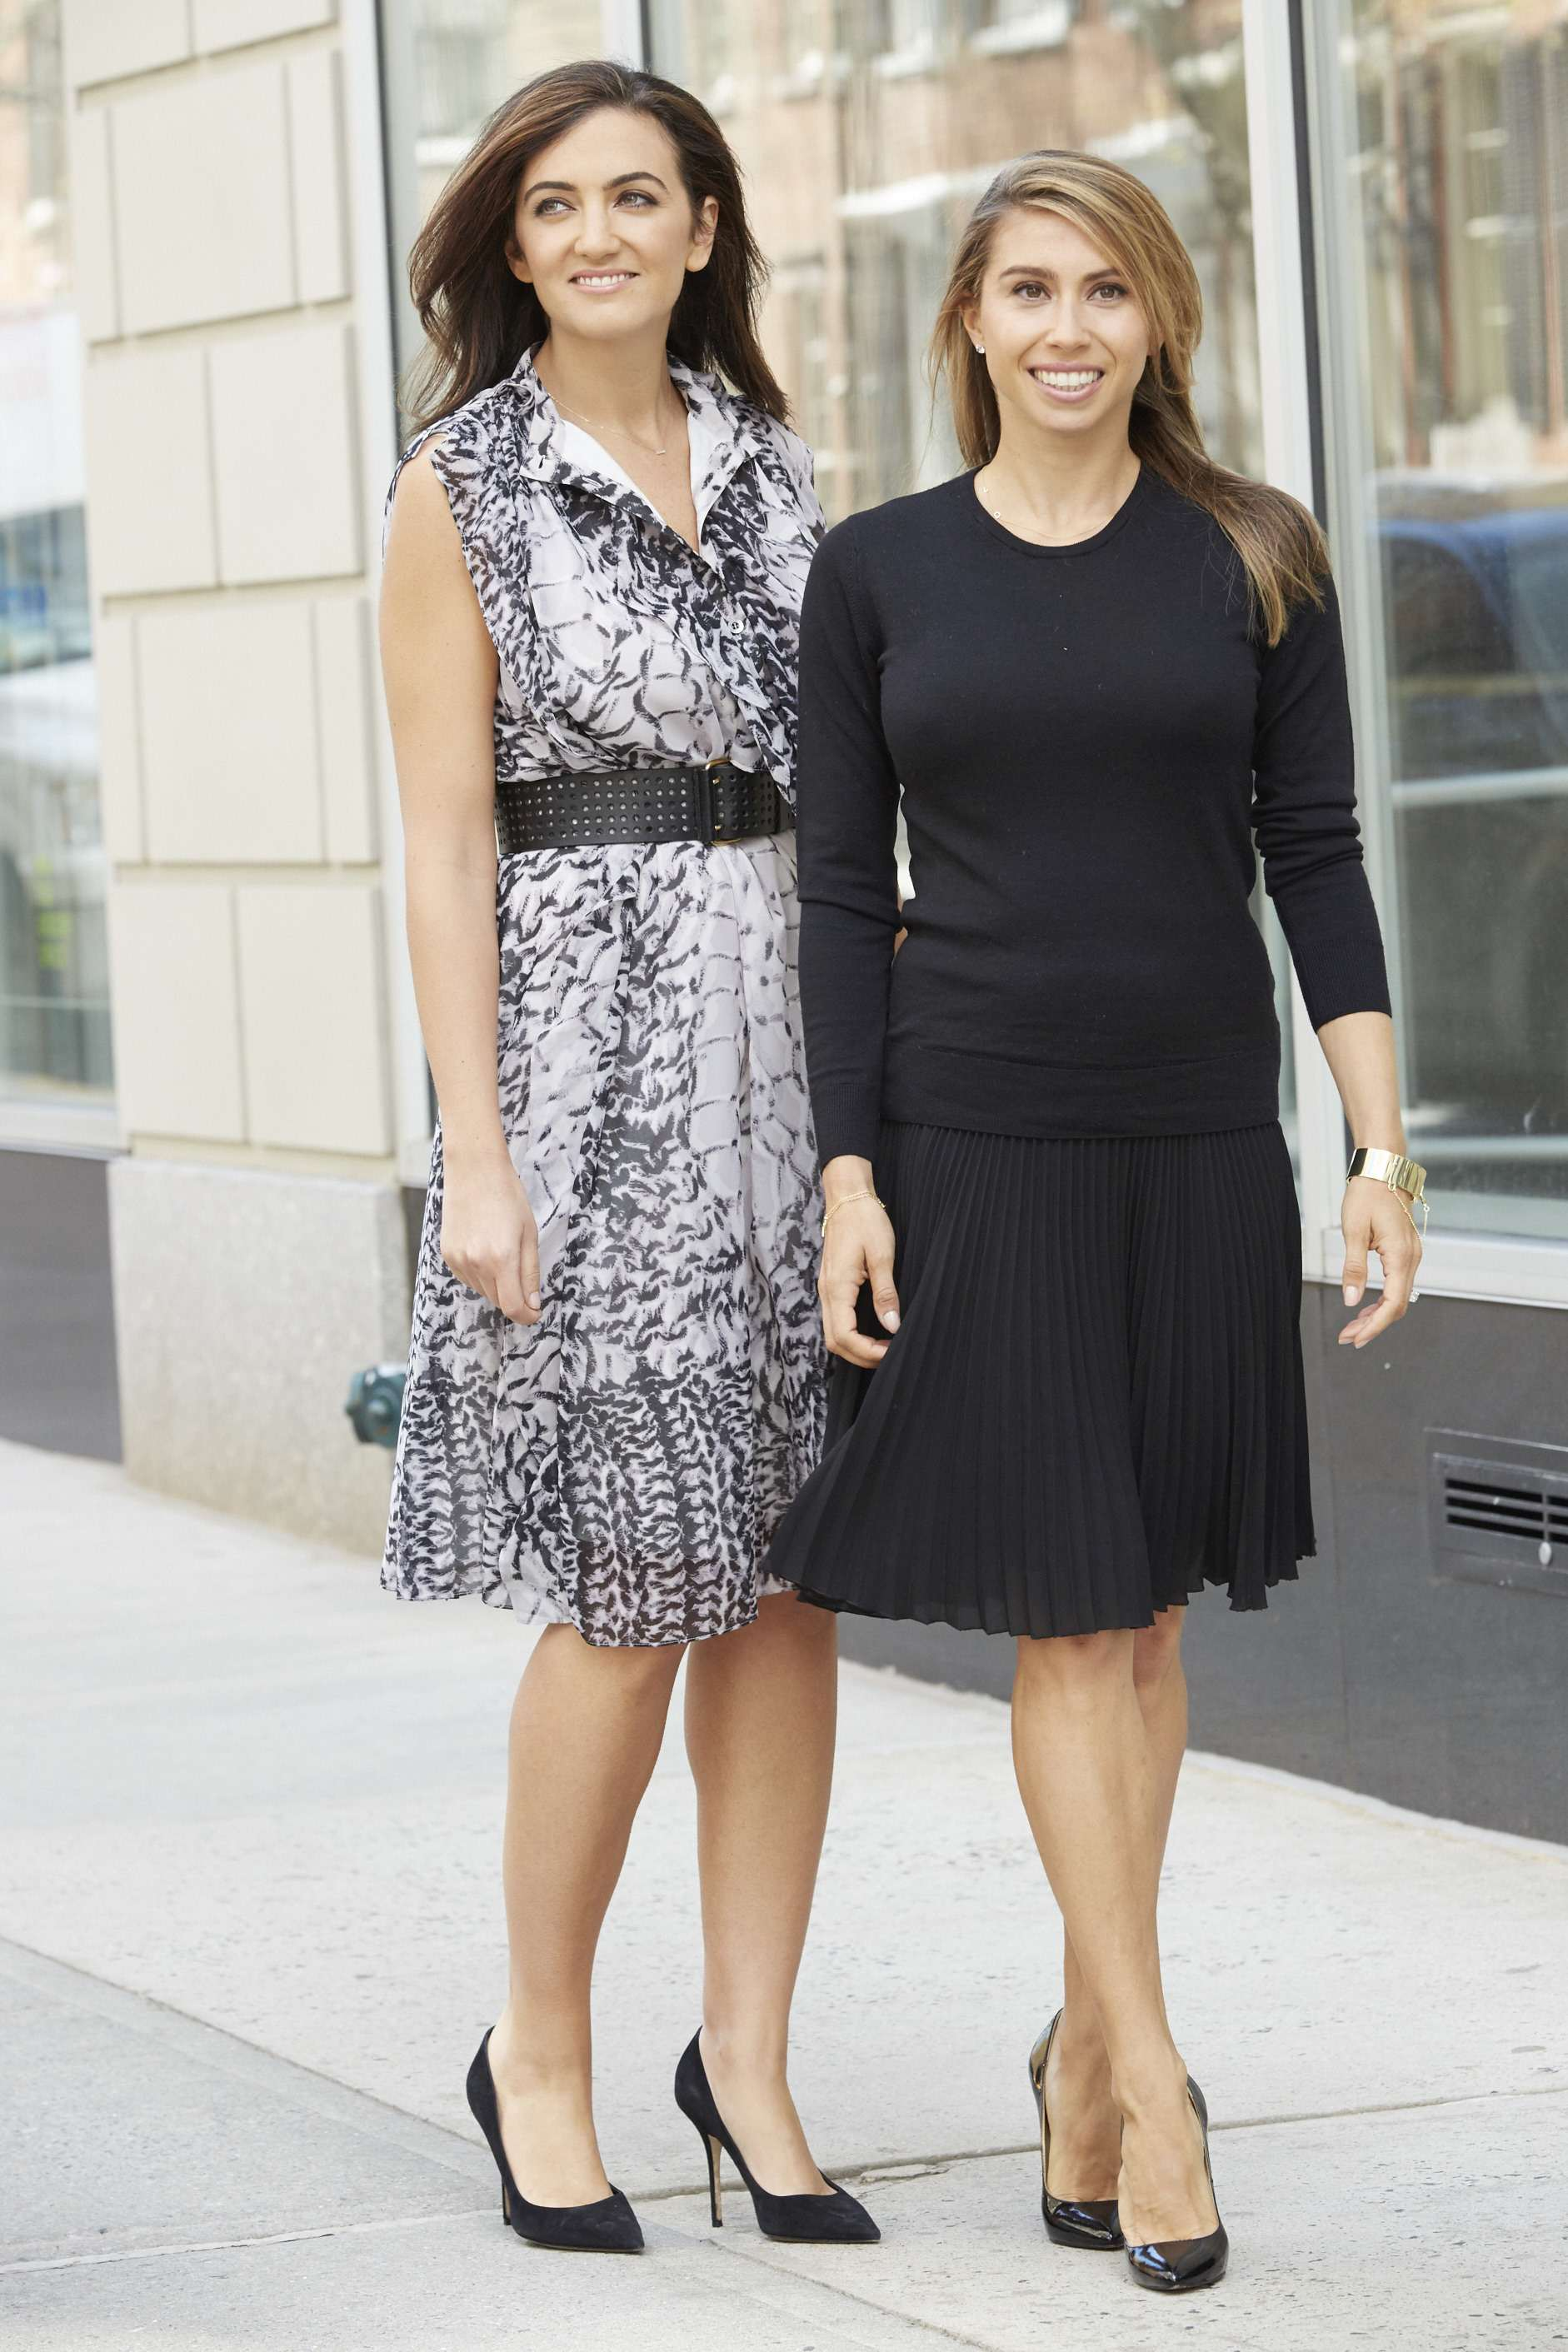 Rent the Runway co-founders, Jennifer Hyman and Jennifer Fleiss